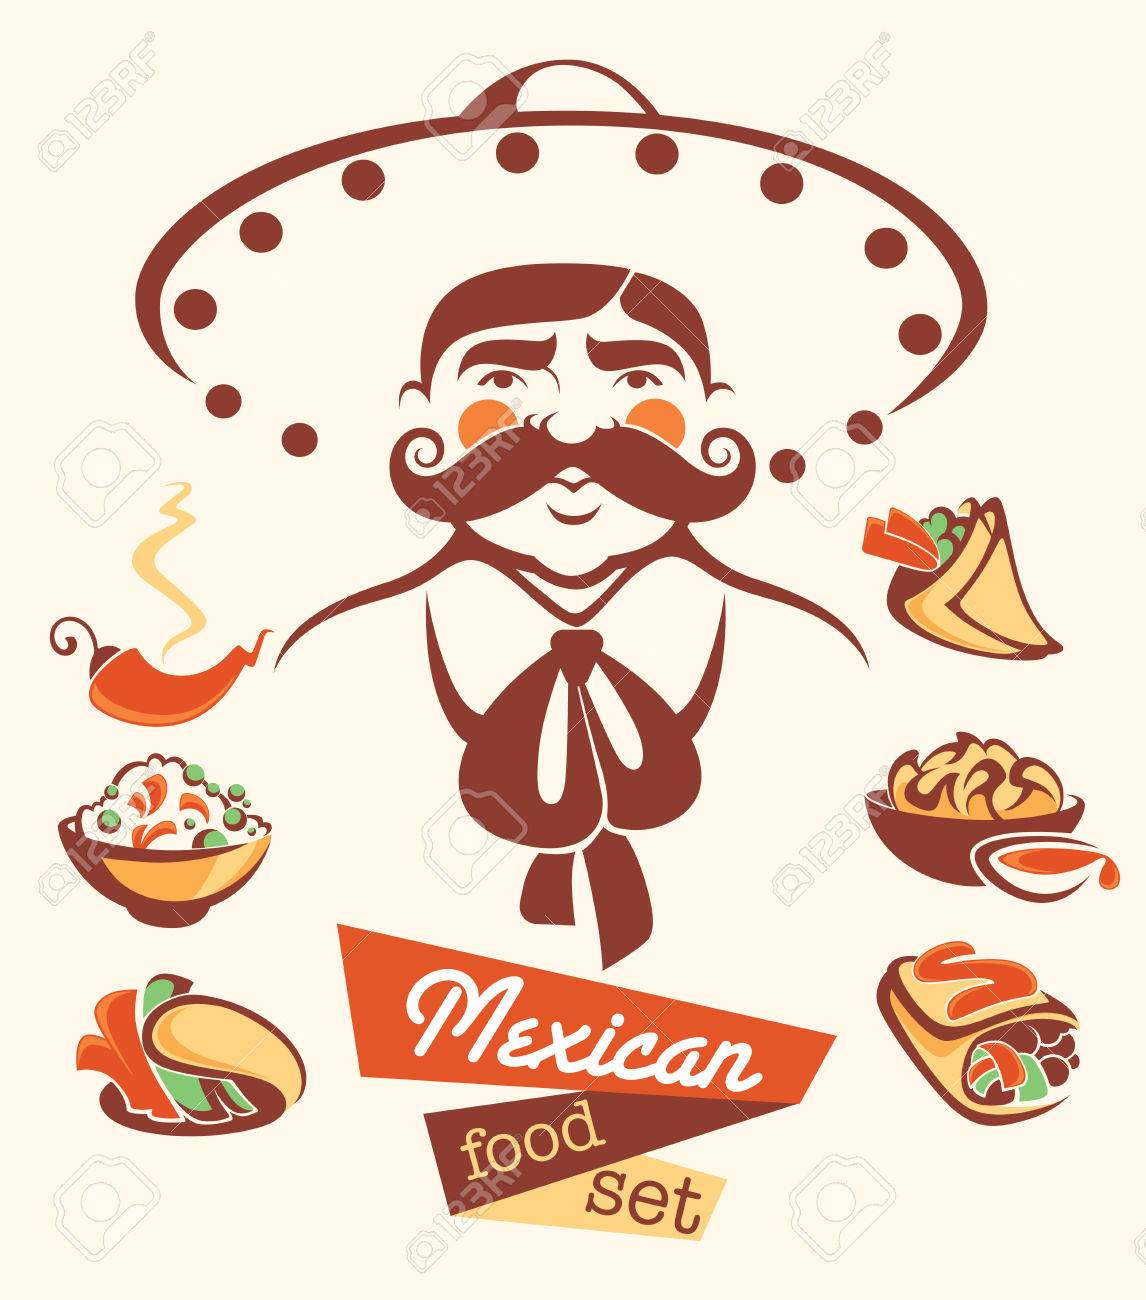 vector collection of traditional mexican fast food and man image Foto de archivo - 39123362